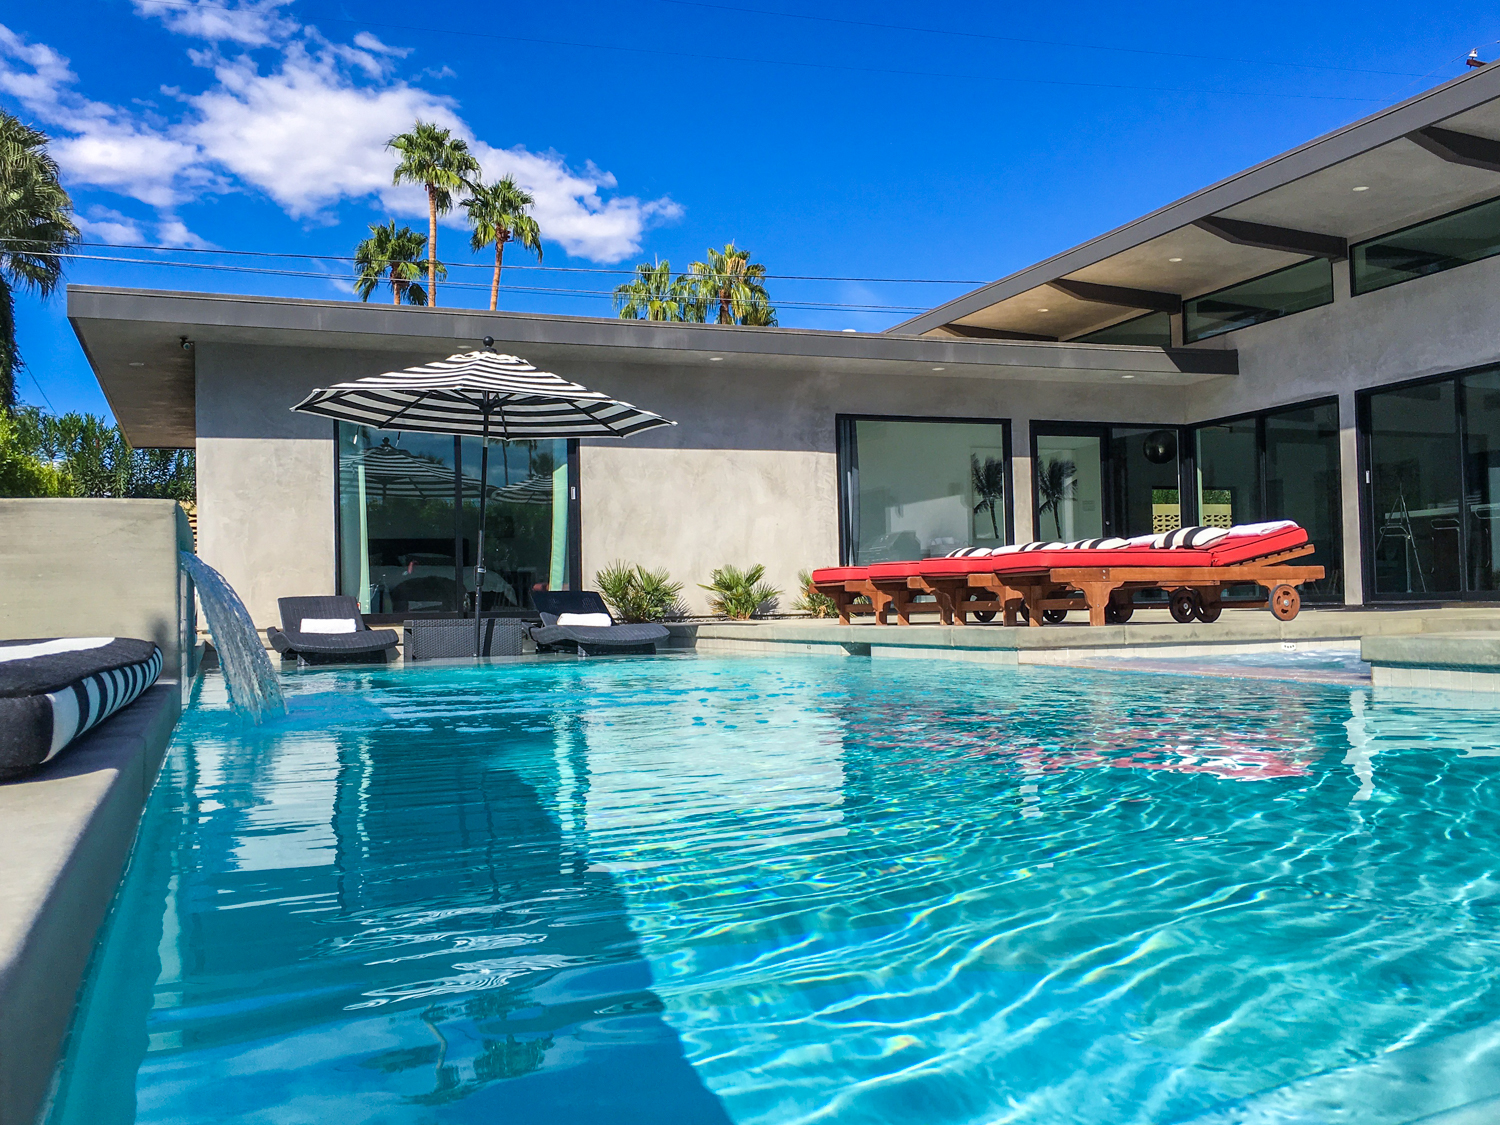 Palms-at-Park-Palm-Springs-Vacation-Rental-Home-6.jpg